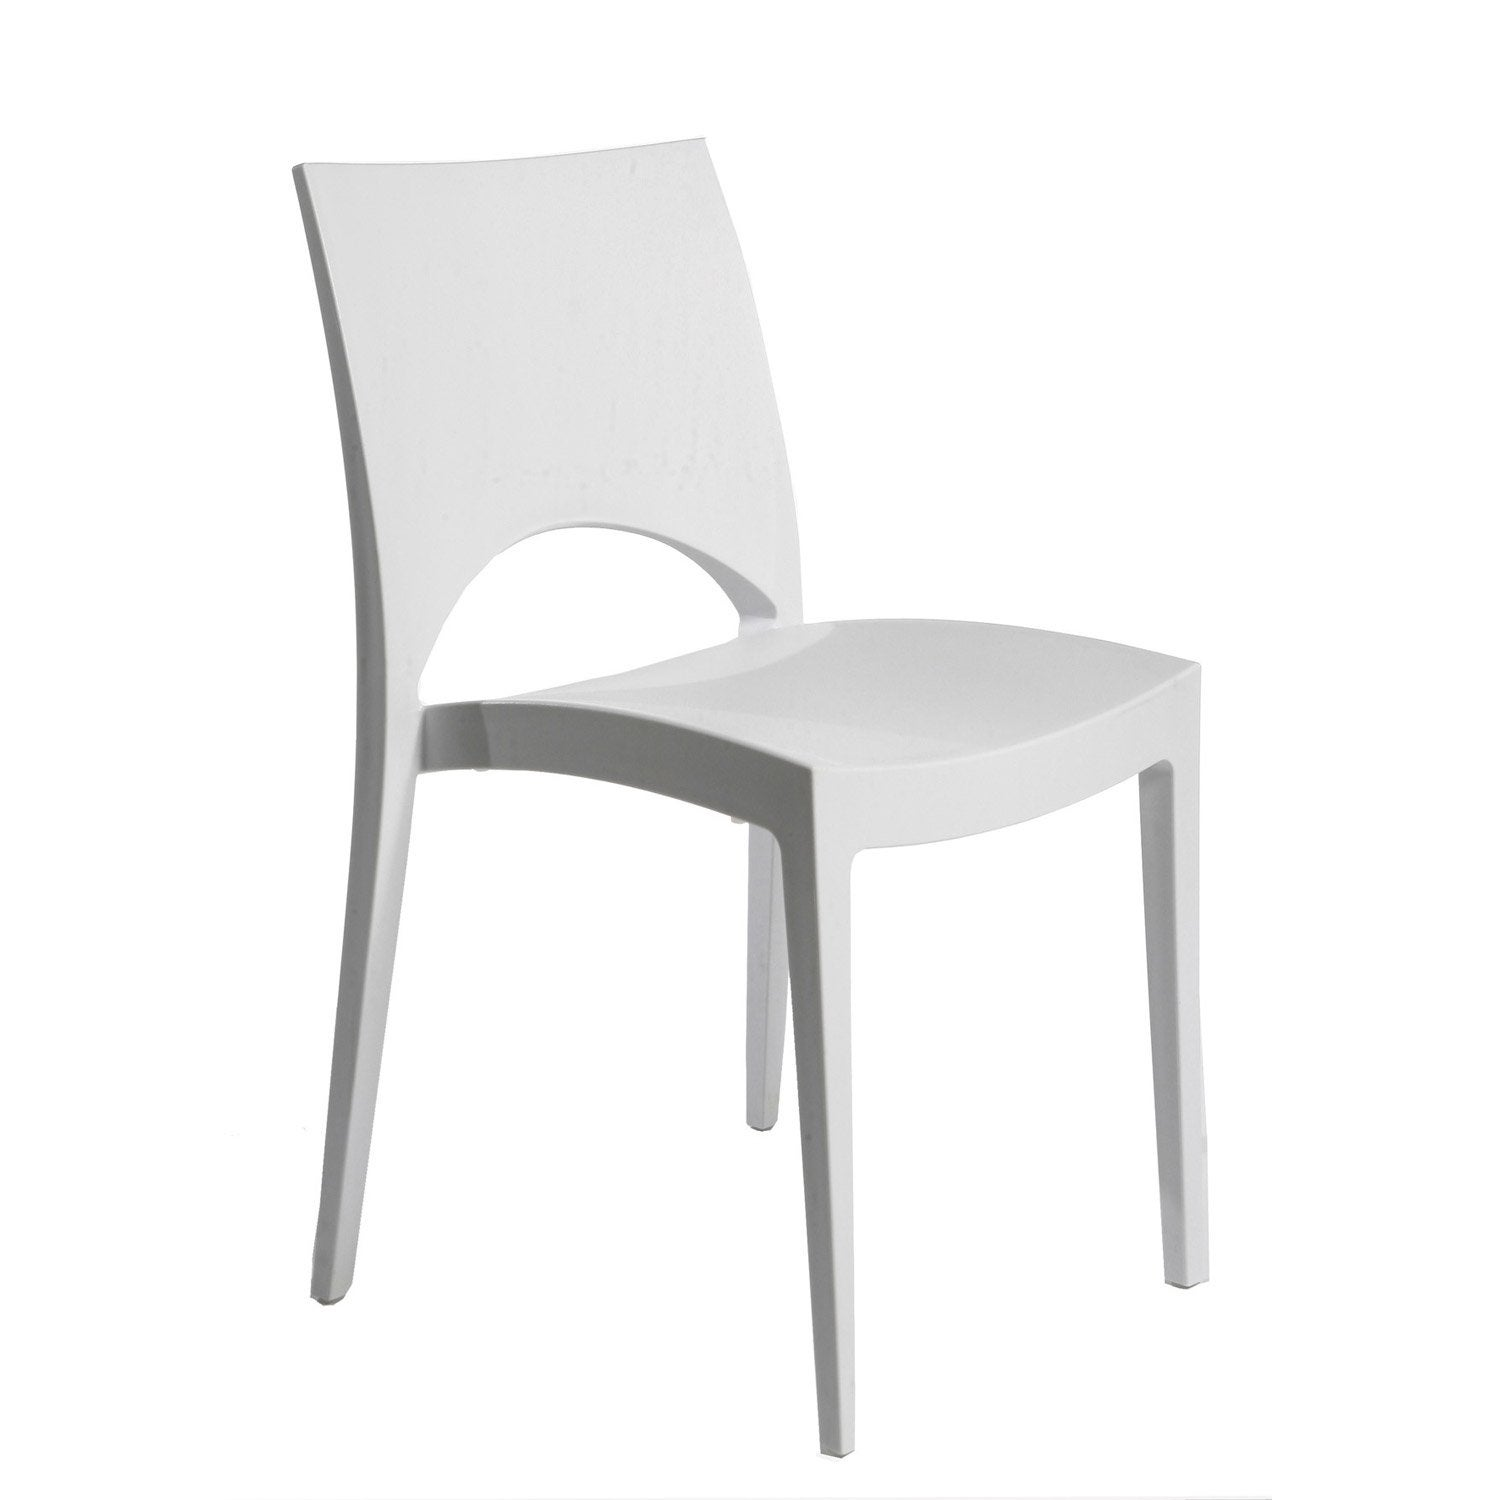 Chaise de jardin en r sine paris greenpol blanc leroy merlin for Chaise de jardin plastique blanc